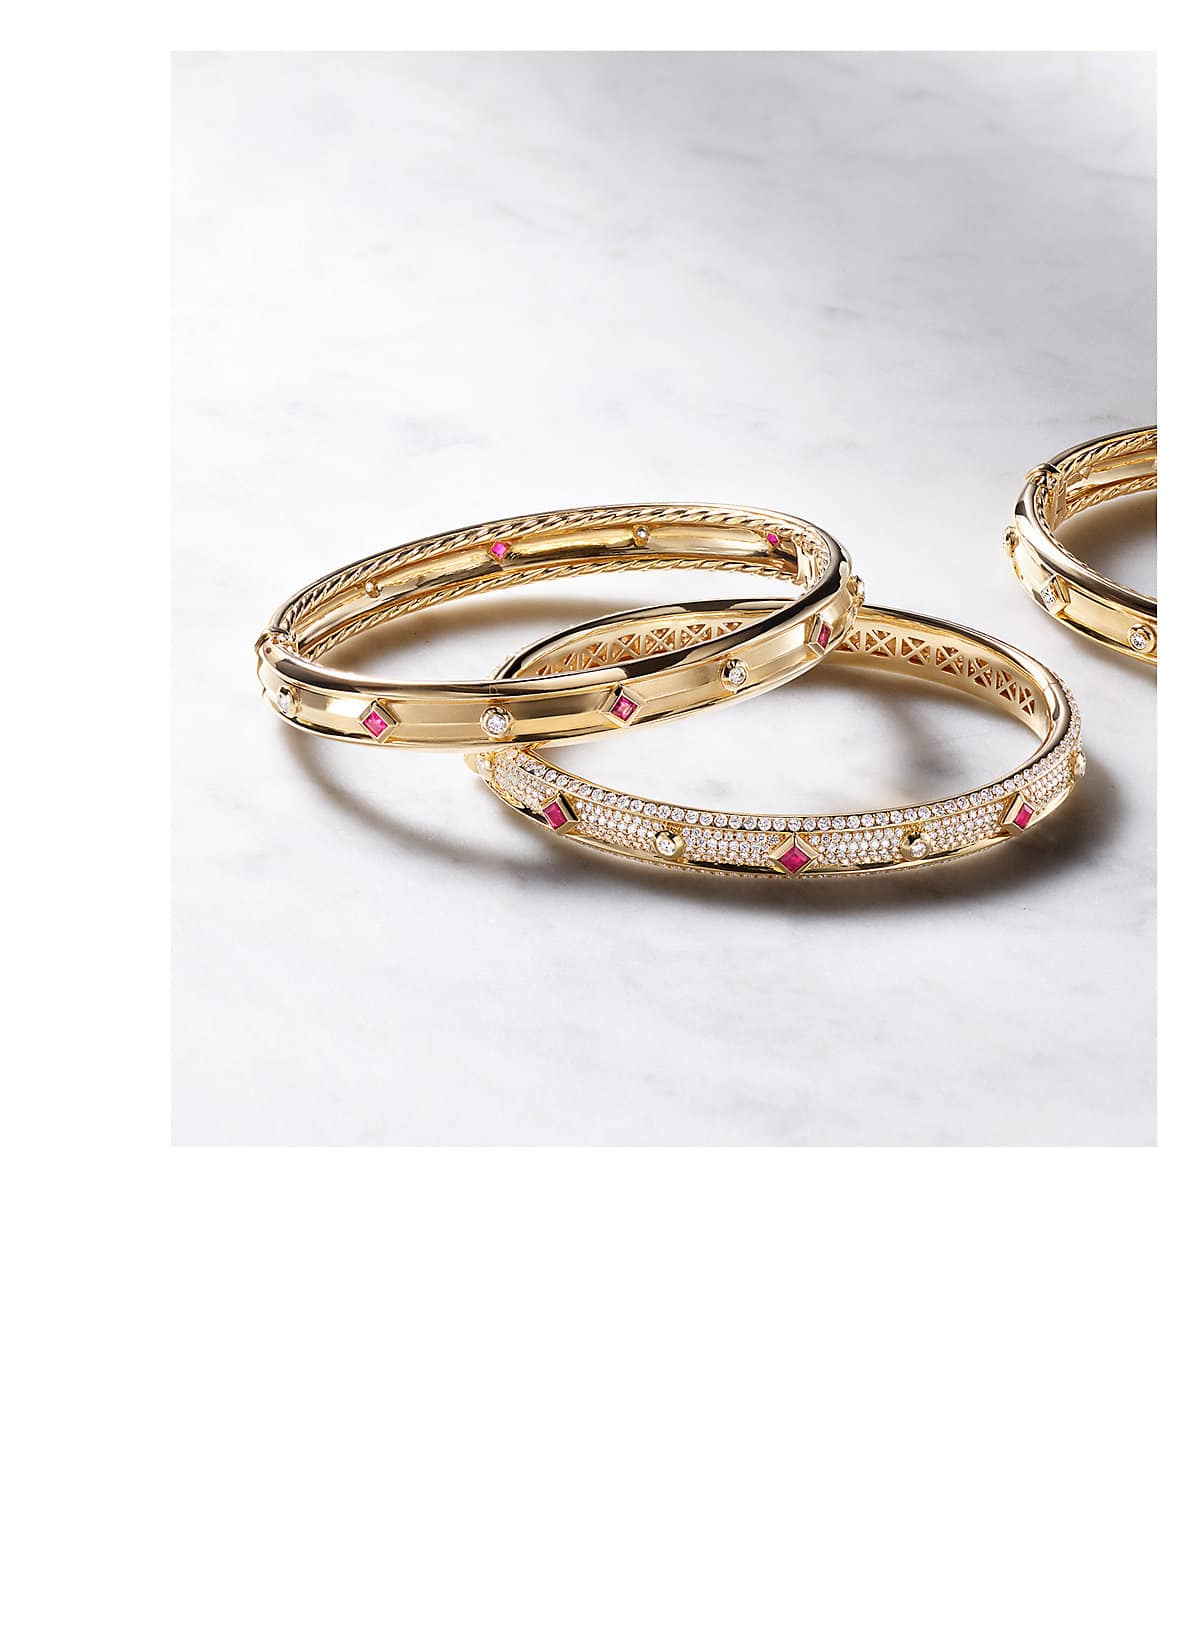 A color photo shows three David Yurman women's bracelets from the Modern Renaissance collection scattered on a grey marble surface. The jewelry is crafted from 18K yellow gold with diamond accents and with or without ruby accents.